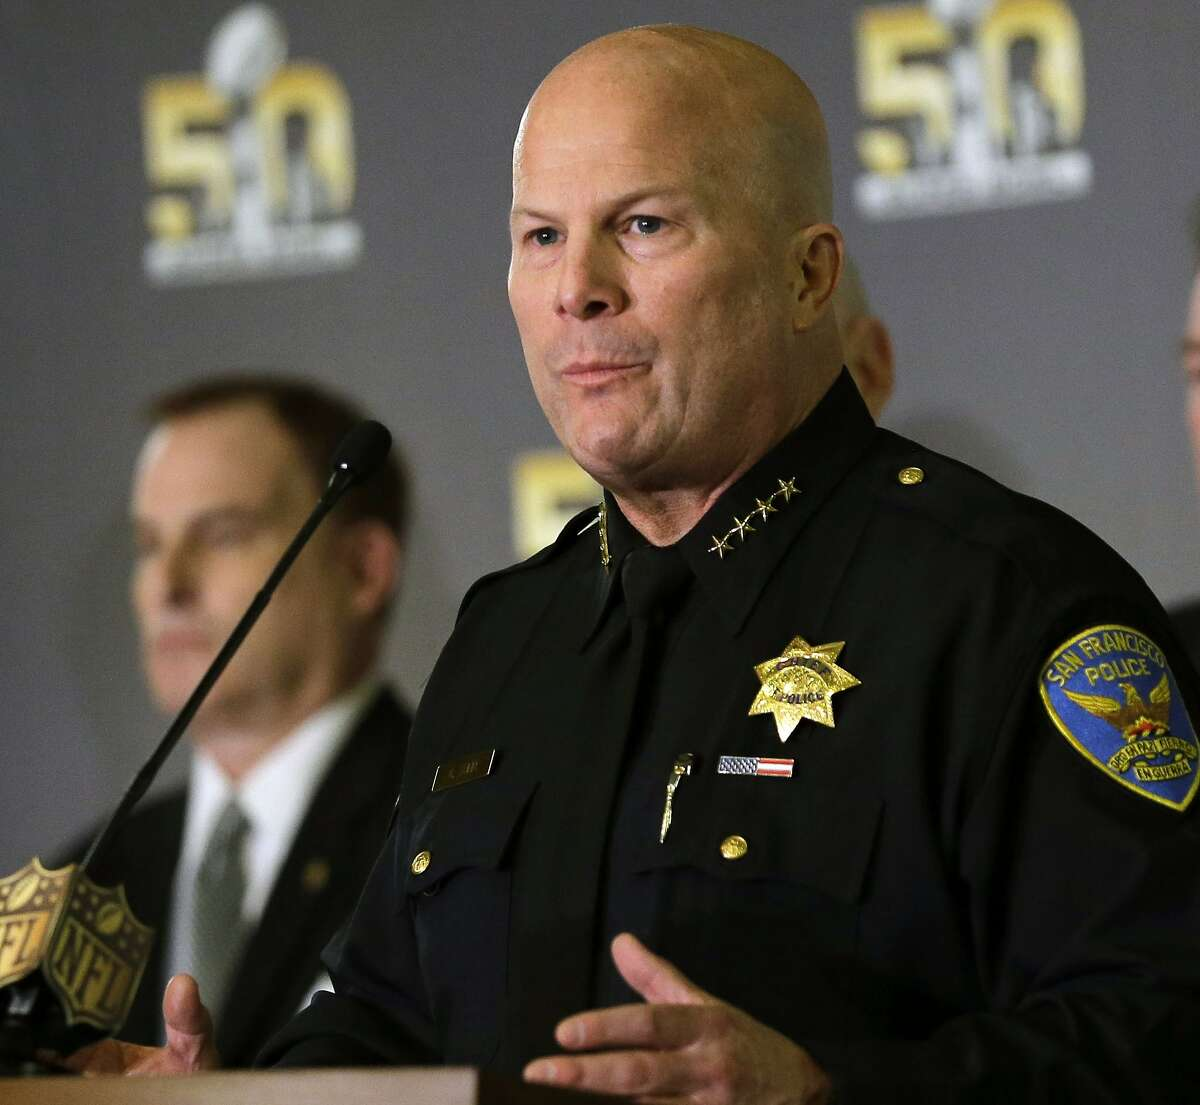 FILE - This Feb. 3, 2016 file photo San Francisco Police Chief Greg Suhr speaks during a news conference in San Francisco. Additional San Francisco police officers have been accused of exchanging racist and homophobic text messages, following a scandal that implicated 14 officers in a department now under federal review. (AP Photo/David J. Phillip,File)